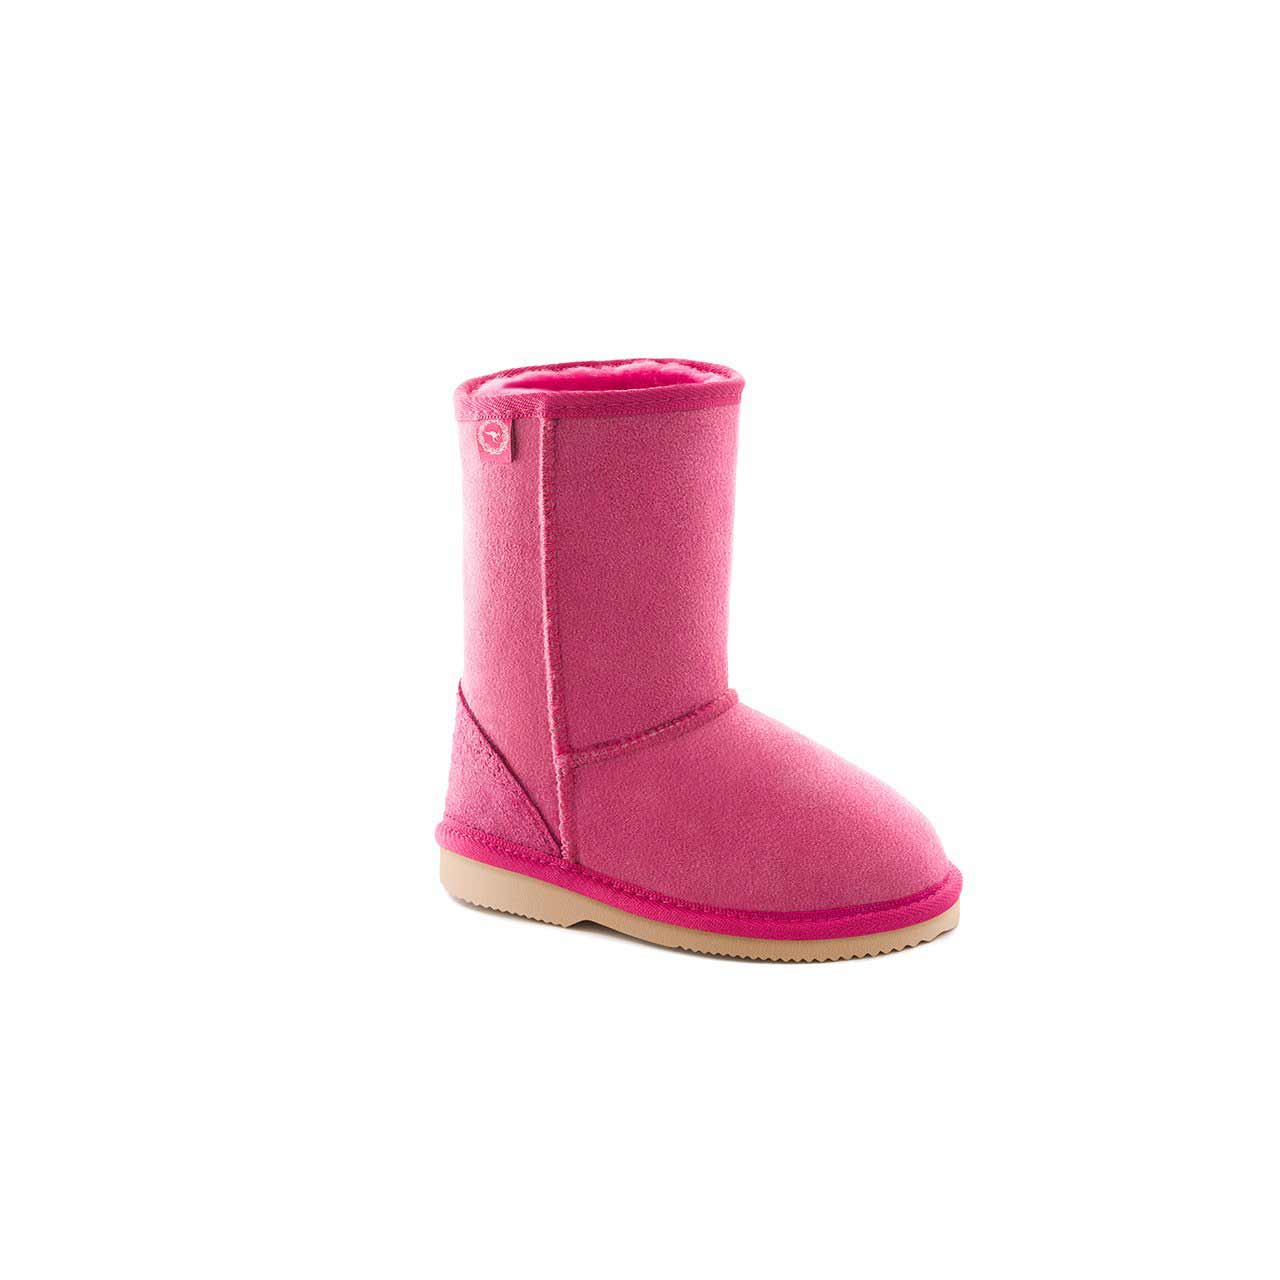 Children's Long Boots - Ugg Australia®